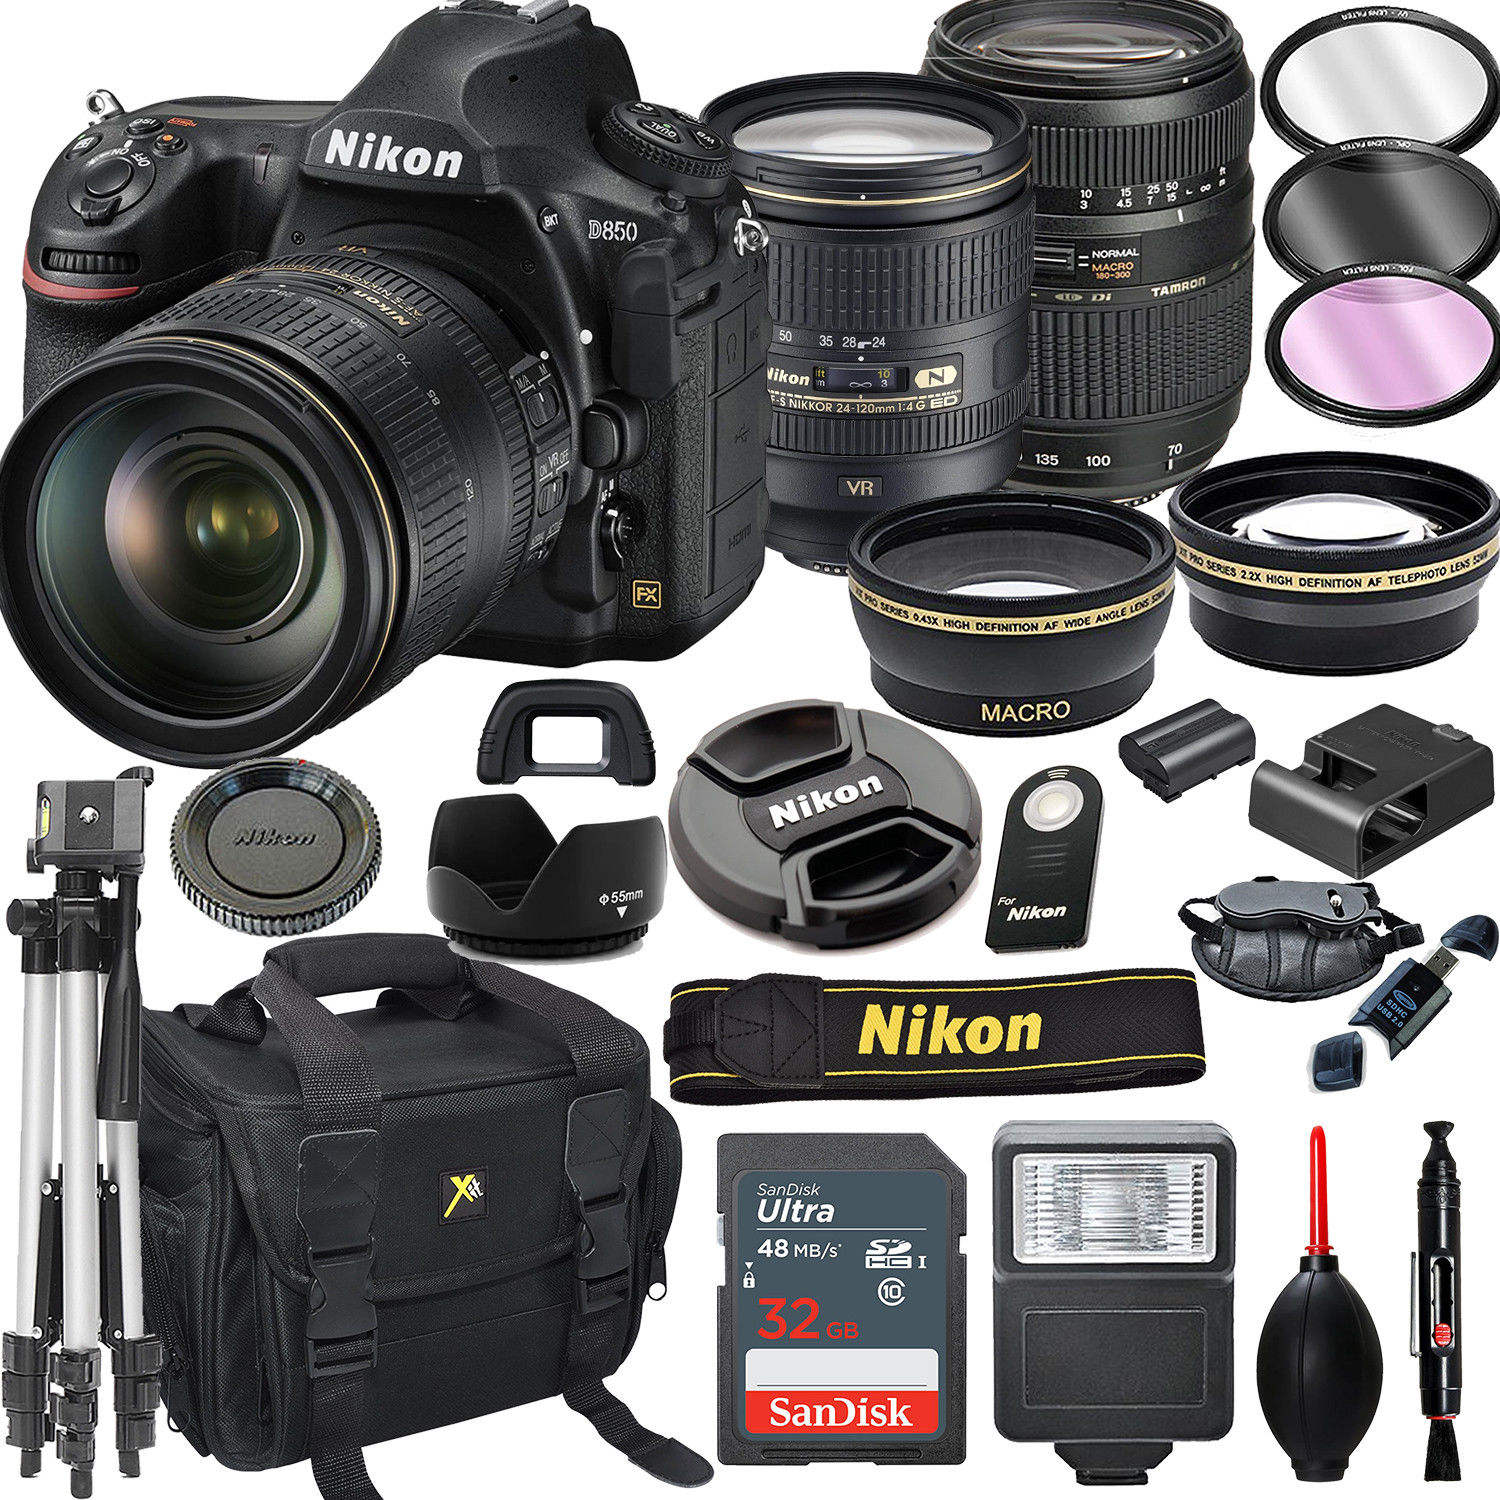 100% ORIGINAL Nikon D850 FX DSLR Camera with 24-120mm f/4G AF-S ED VR Lens+ 64GB Pro Video Kit